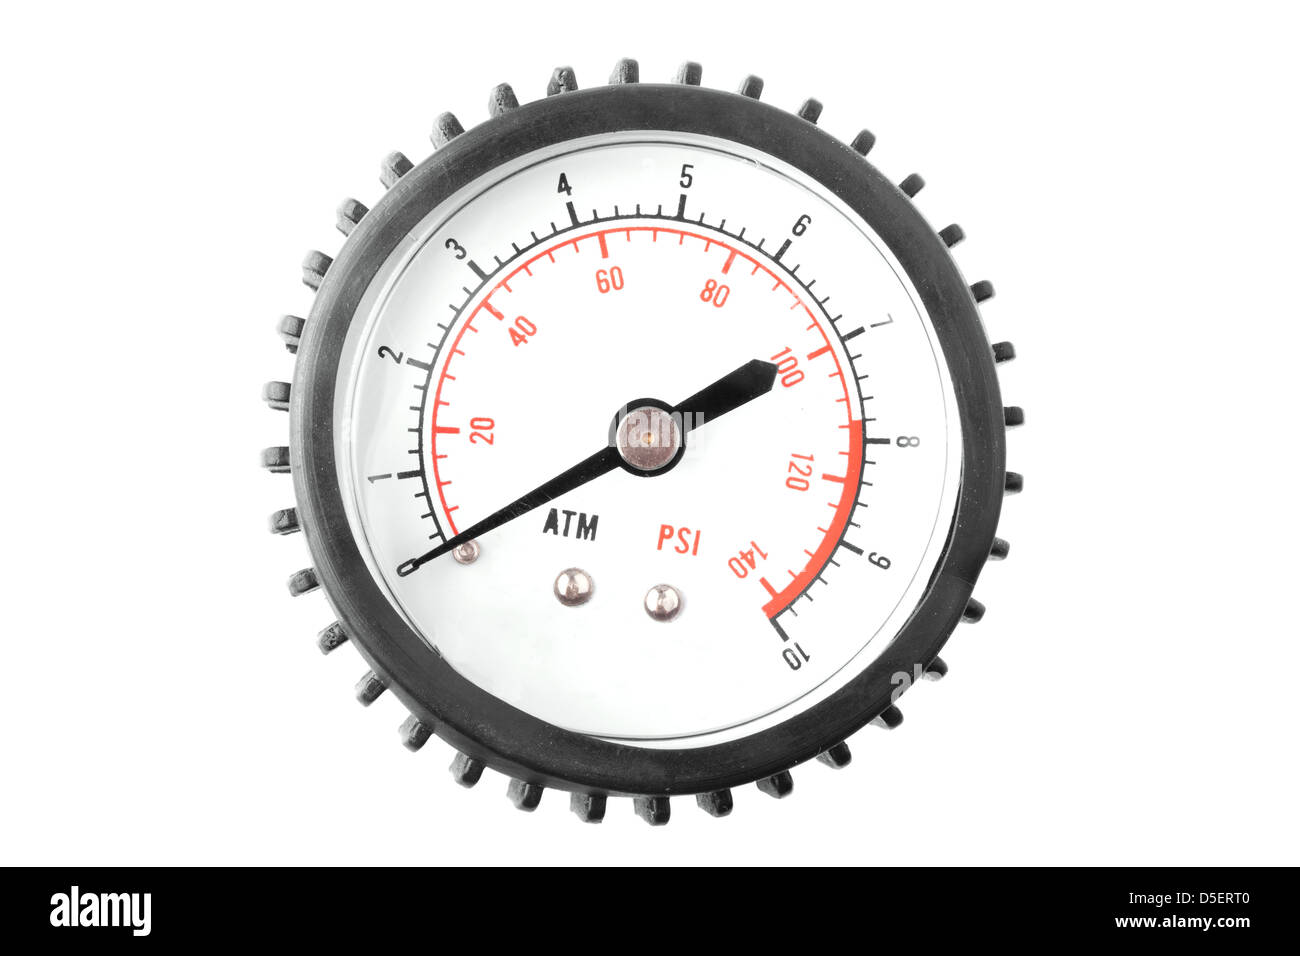 Manometer on white background - Stock Image